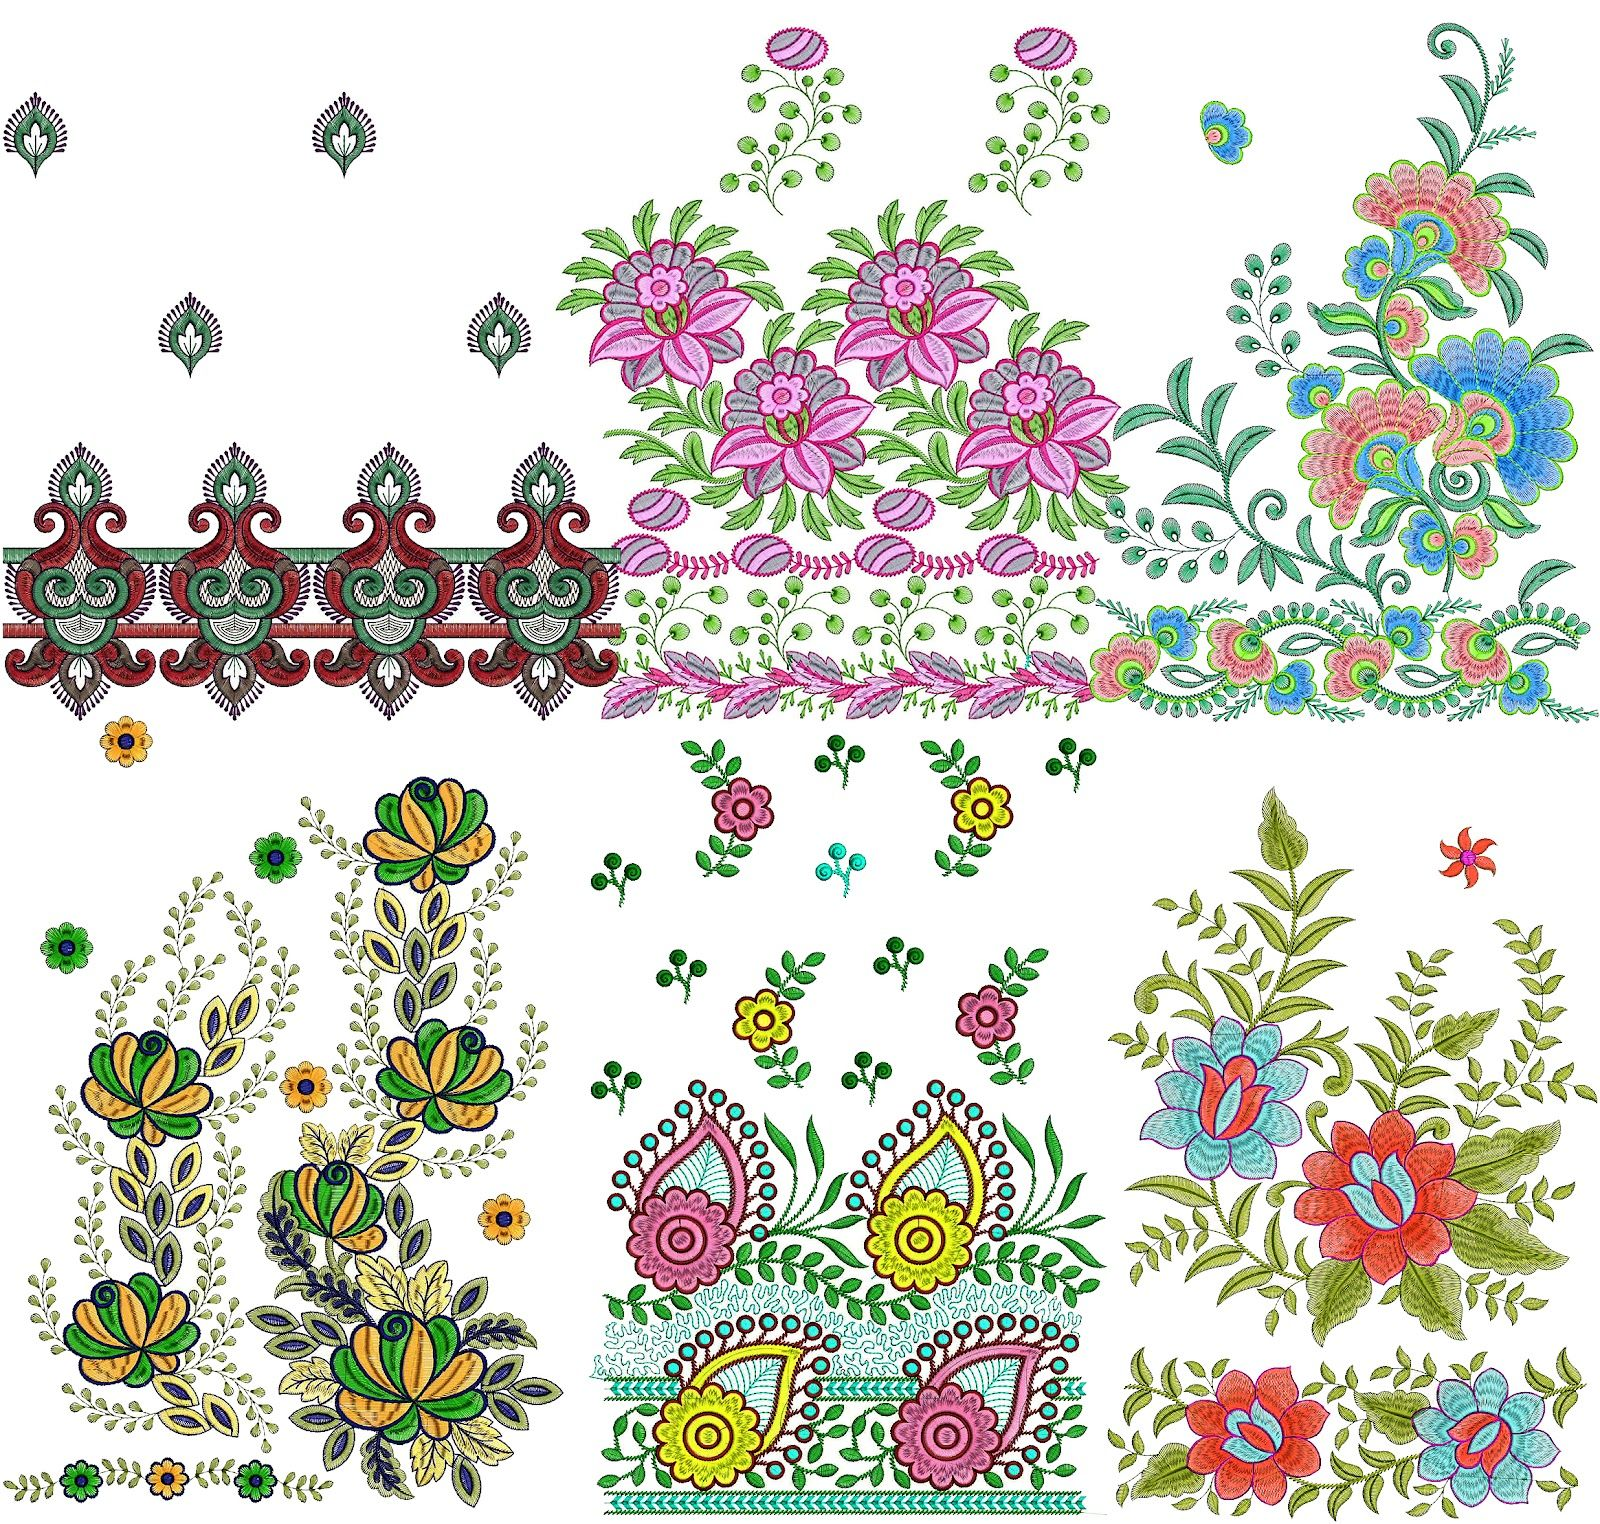 Gujarati cultural ladies dress embroidery design latest lindasembroiderydesigns lindee g embroidery free embroidery designs embroidery library embroidery designs embroidery embroidery machine bankloansurffo Gallery